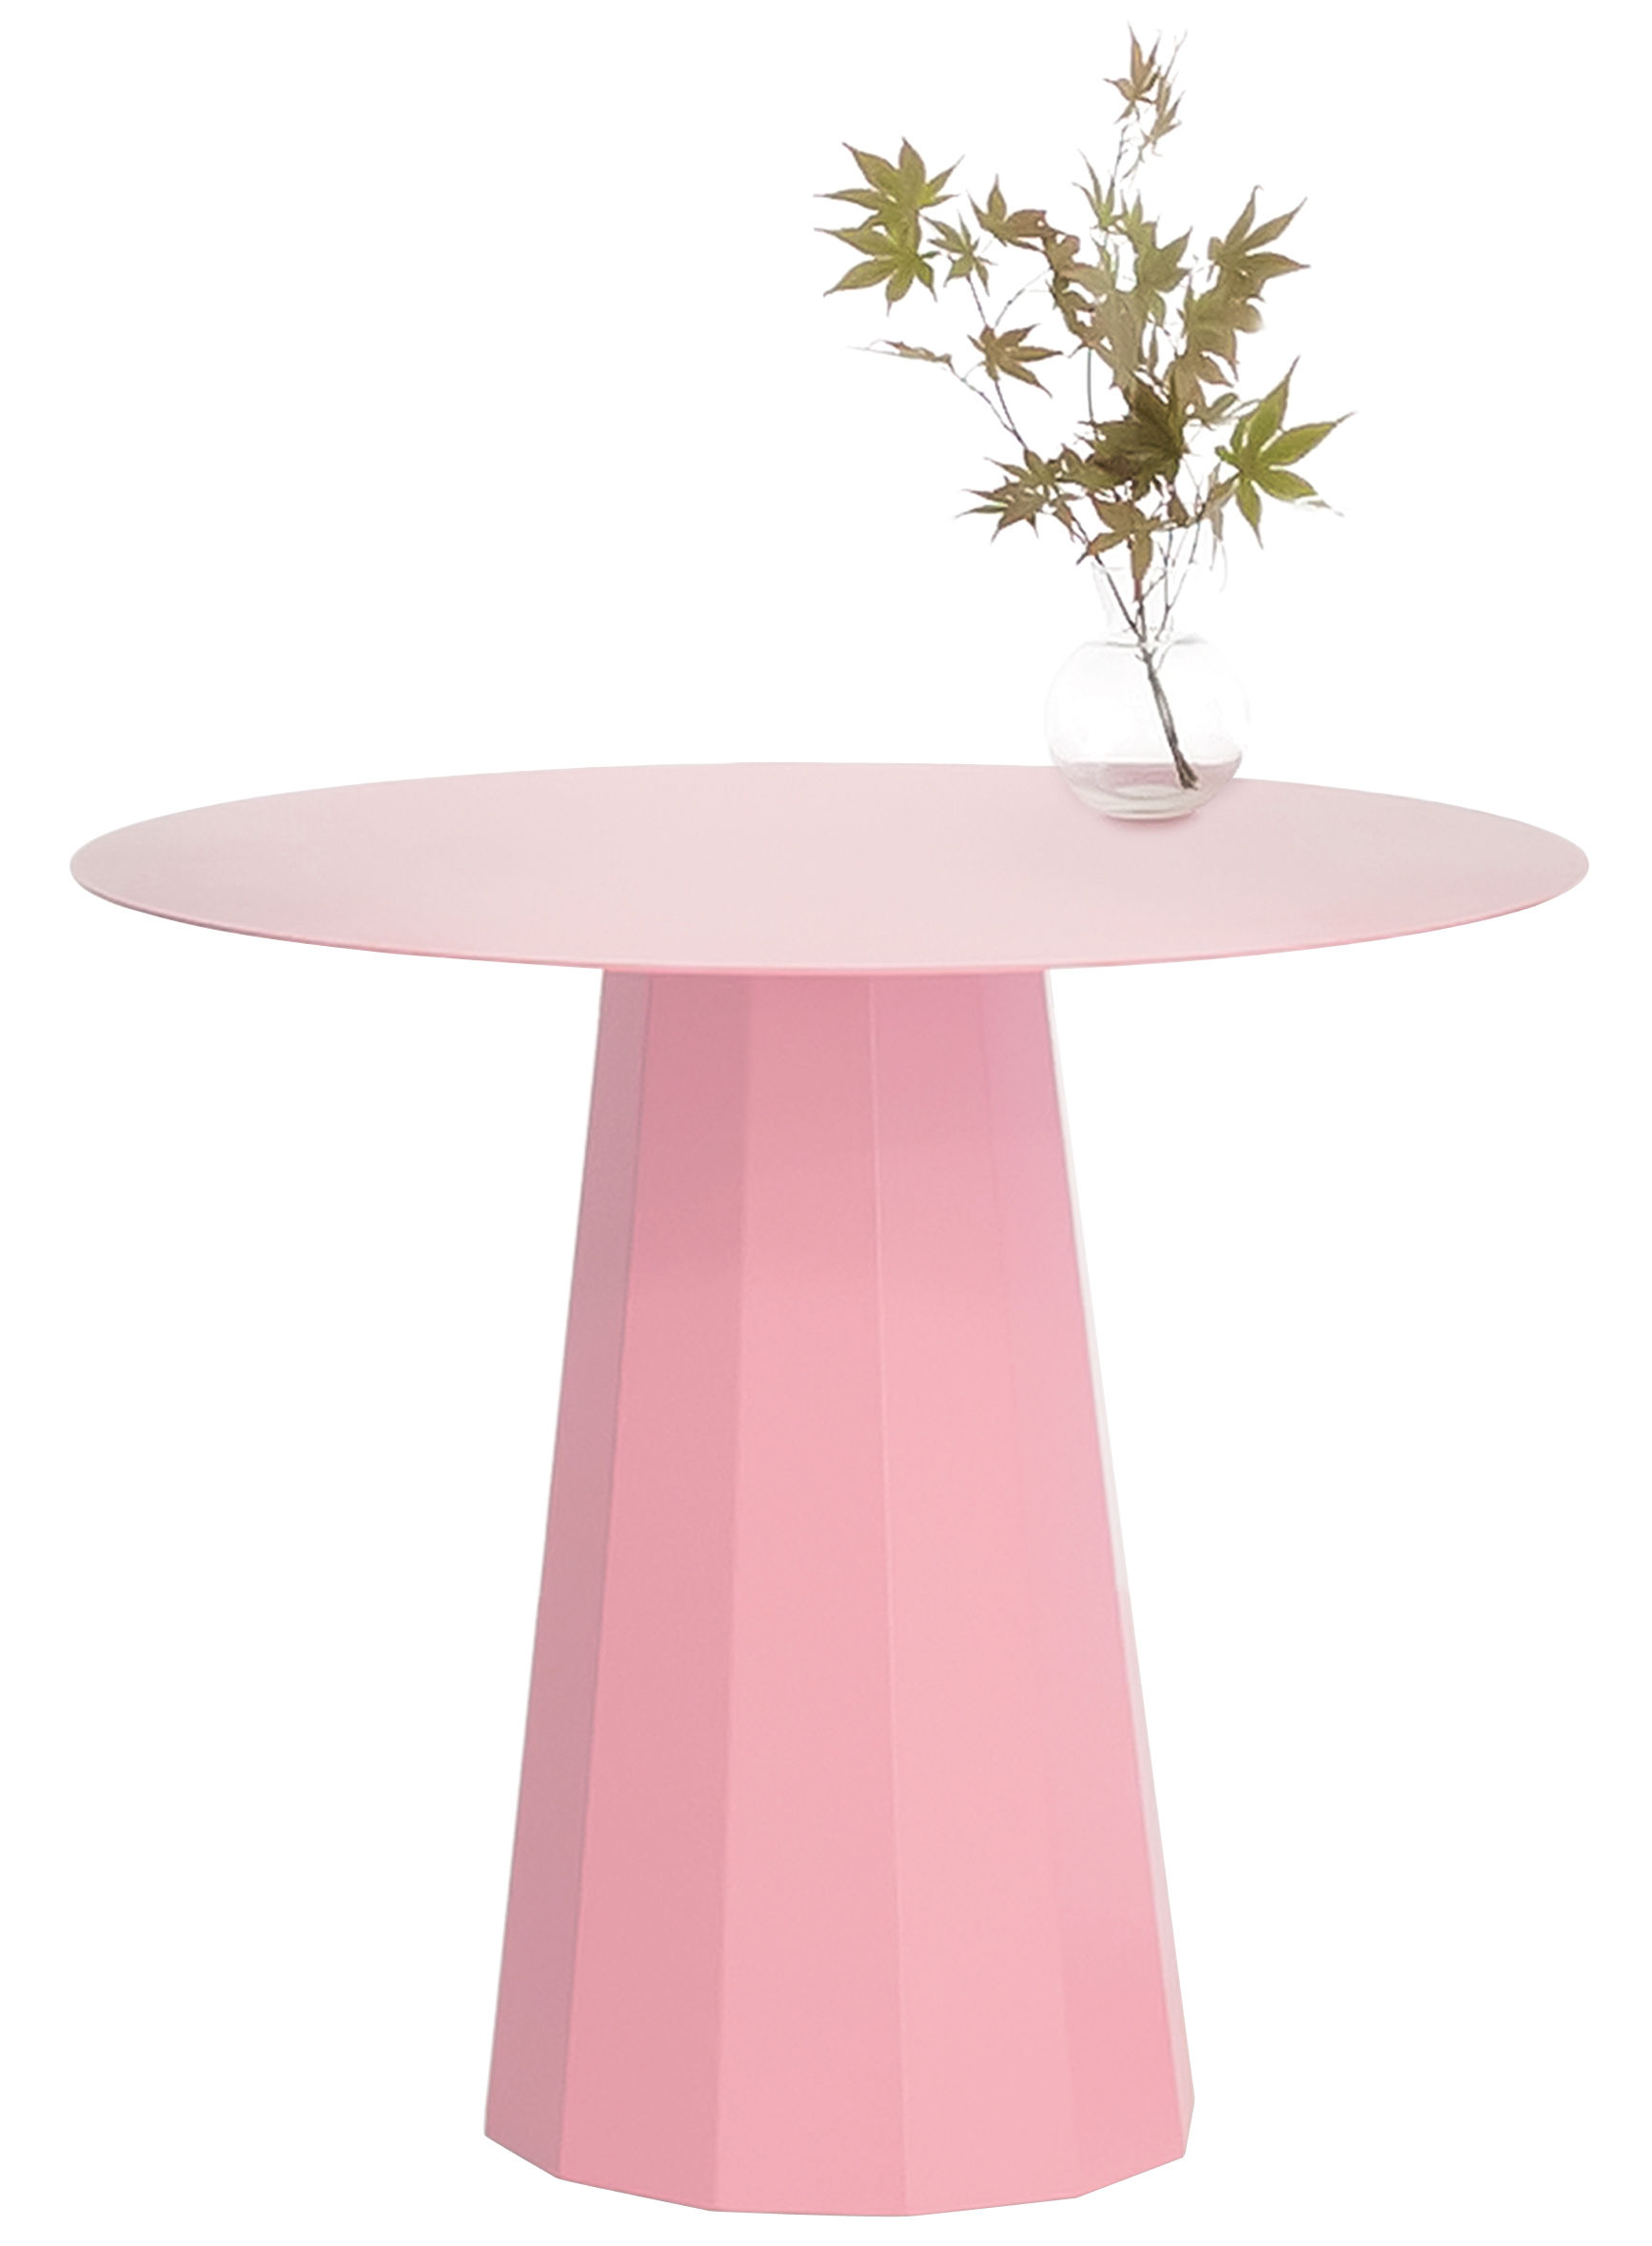 Furniture - Coffee Tables - Ankara M Small table by Matière Grise - Light pink - Steel